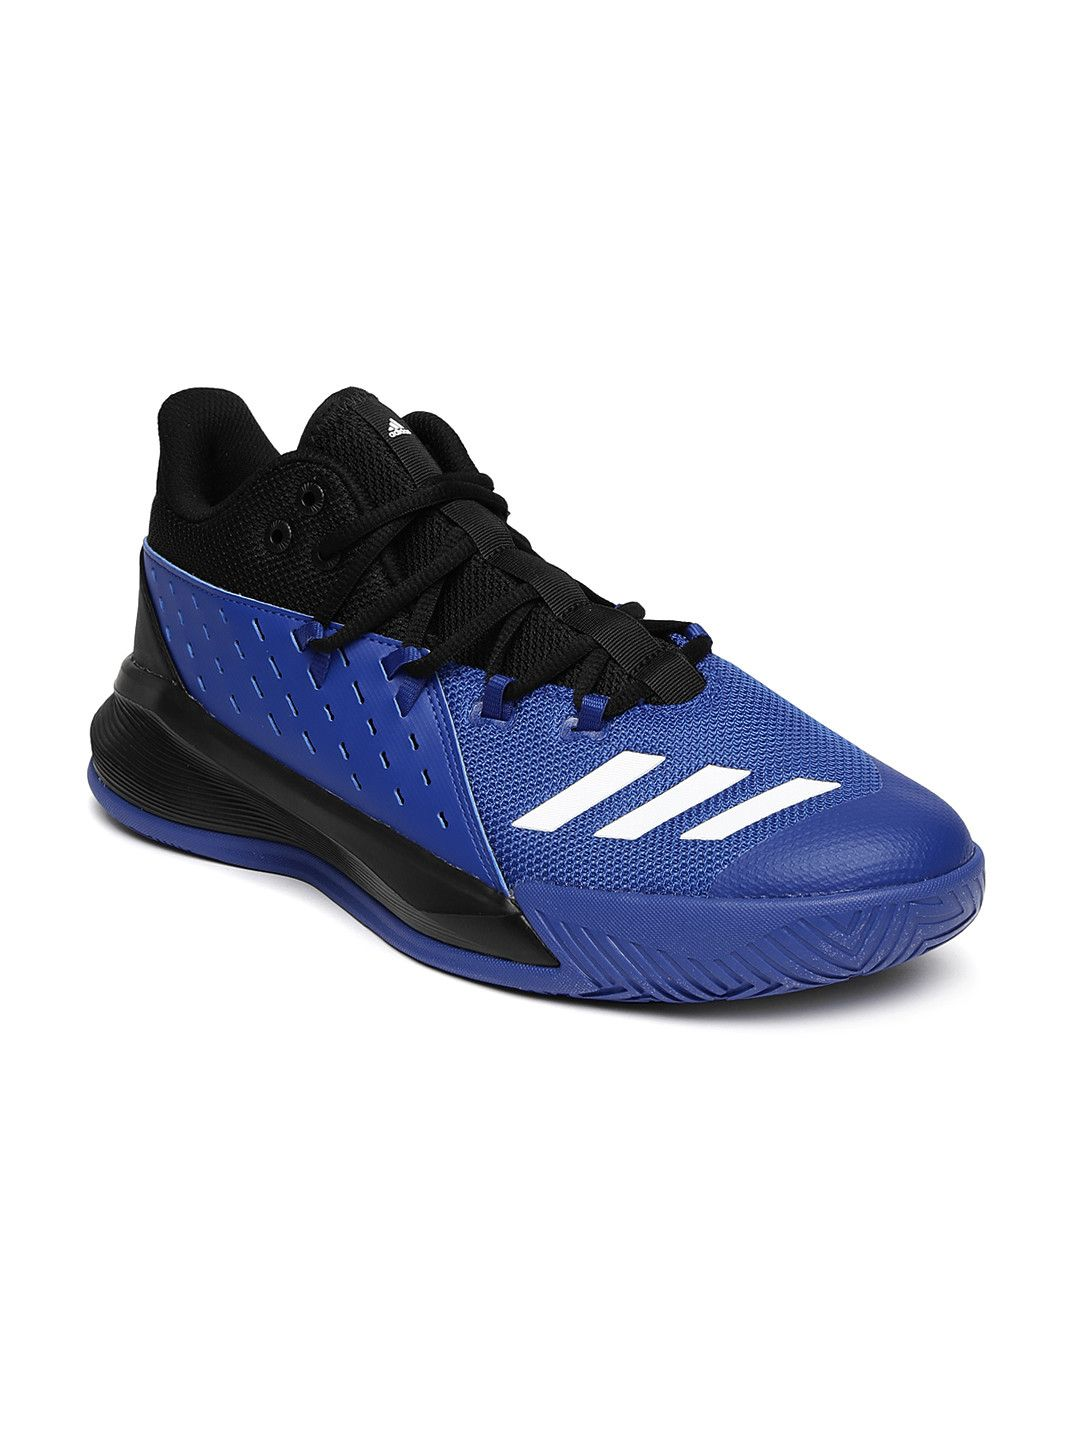 899d12bf6 Adidas Basketball Shoes Buy Adidas Basketball Shoes Online in India at Best  Price